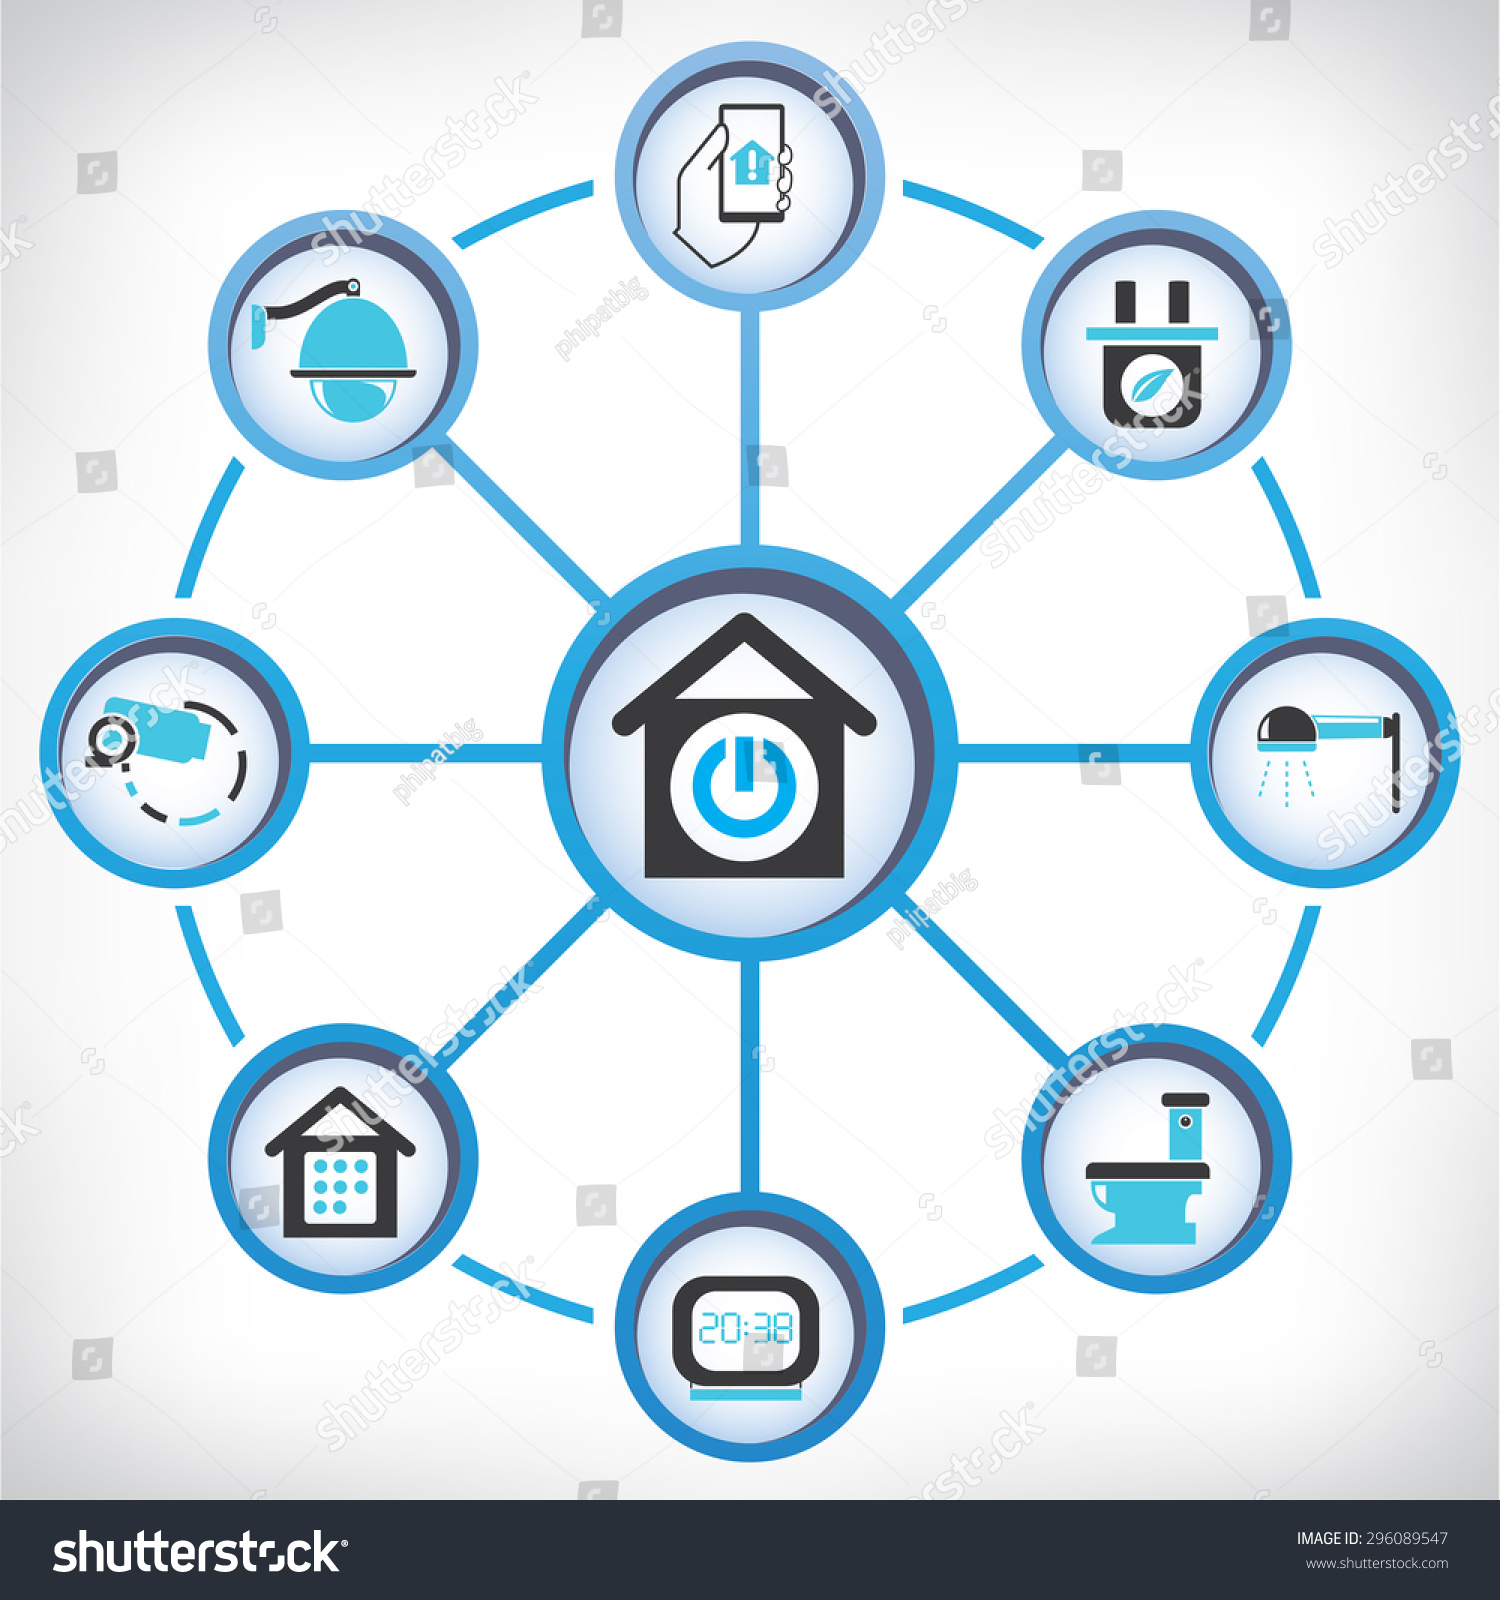 Home Automation Diagram Stock Vector 296089547 - Shutterstock